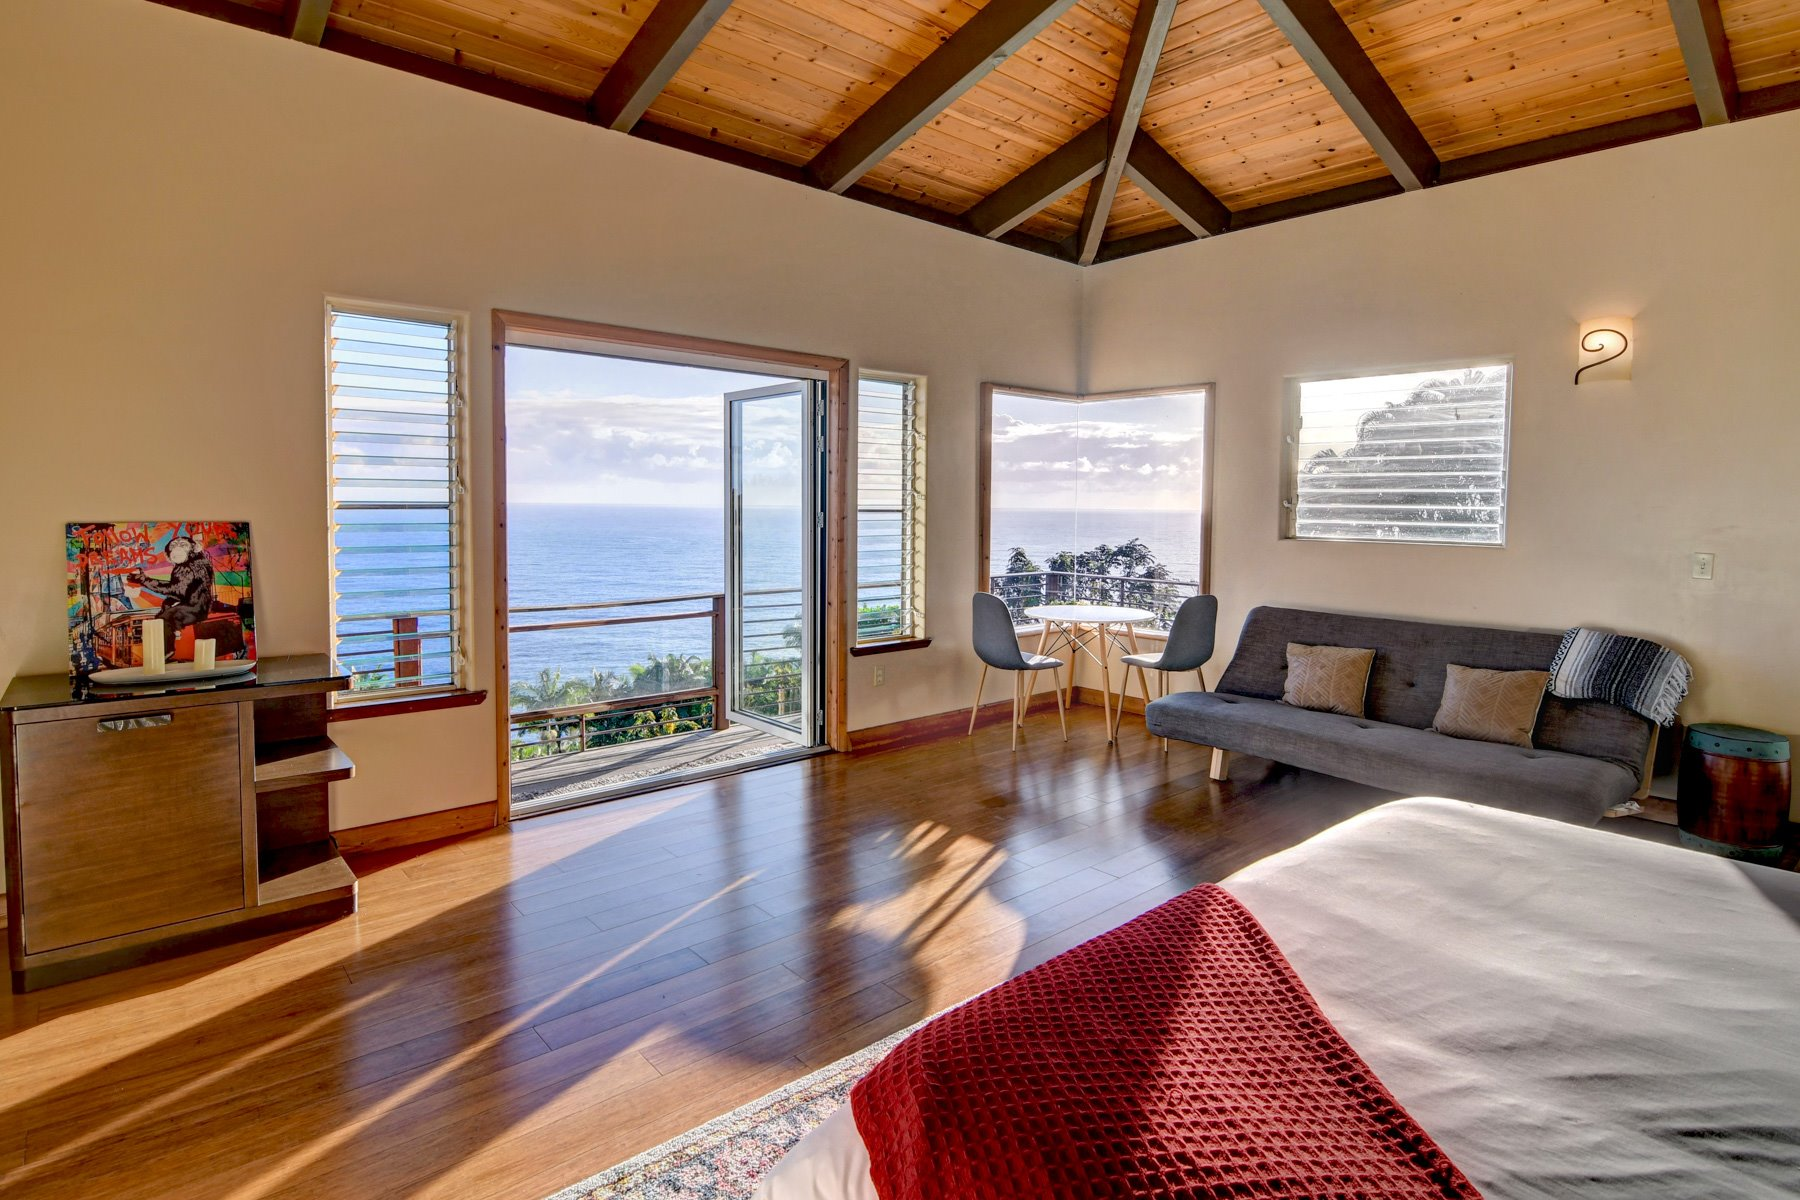 The master bedroom offers incredible views which are expanded upon with corner window.